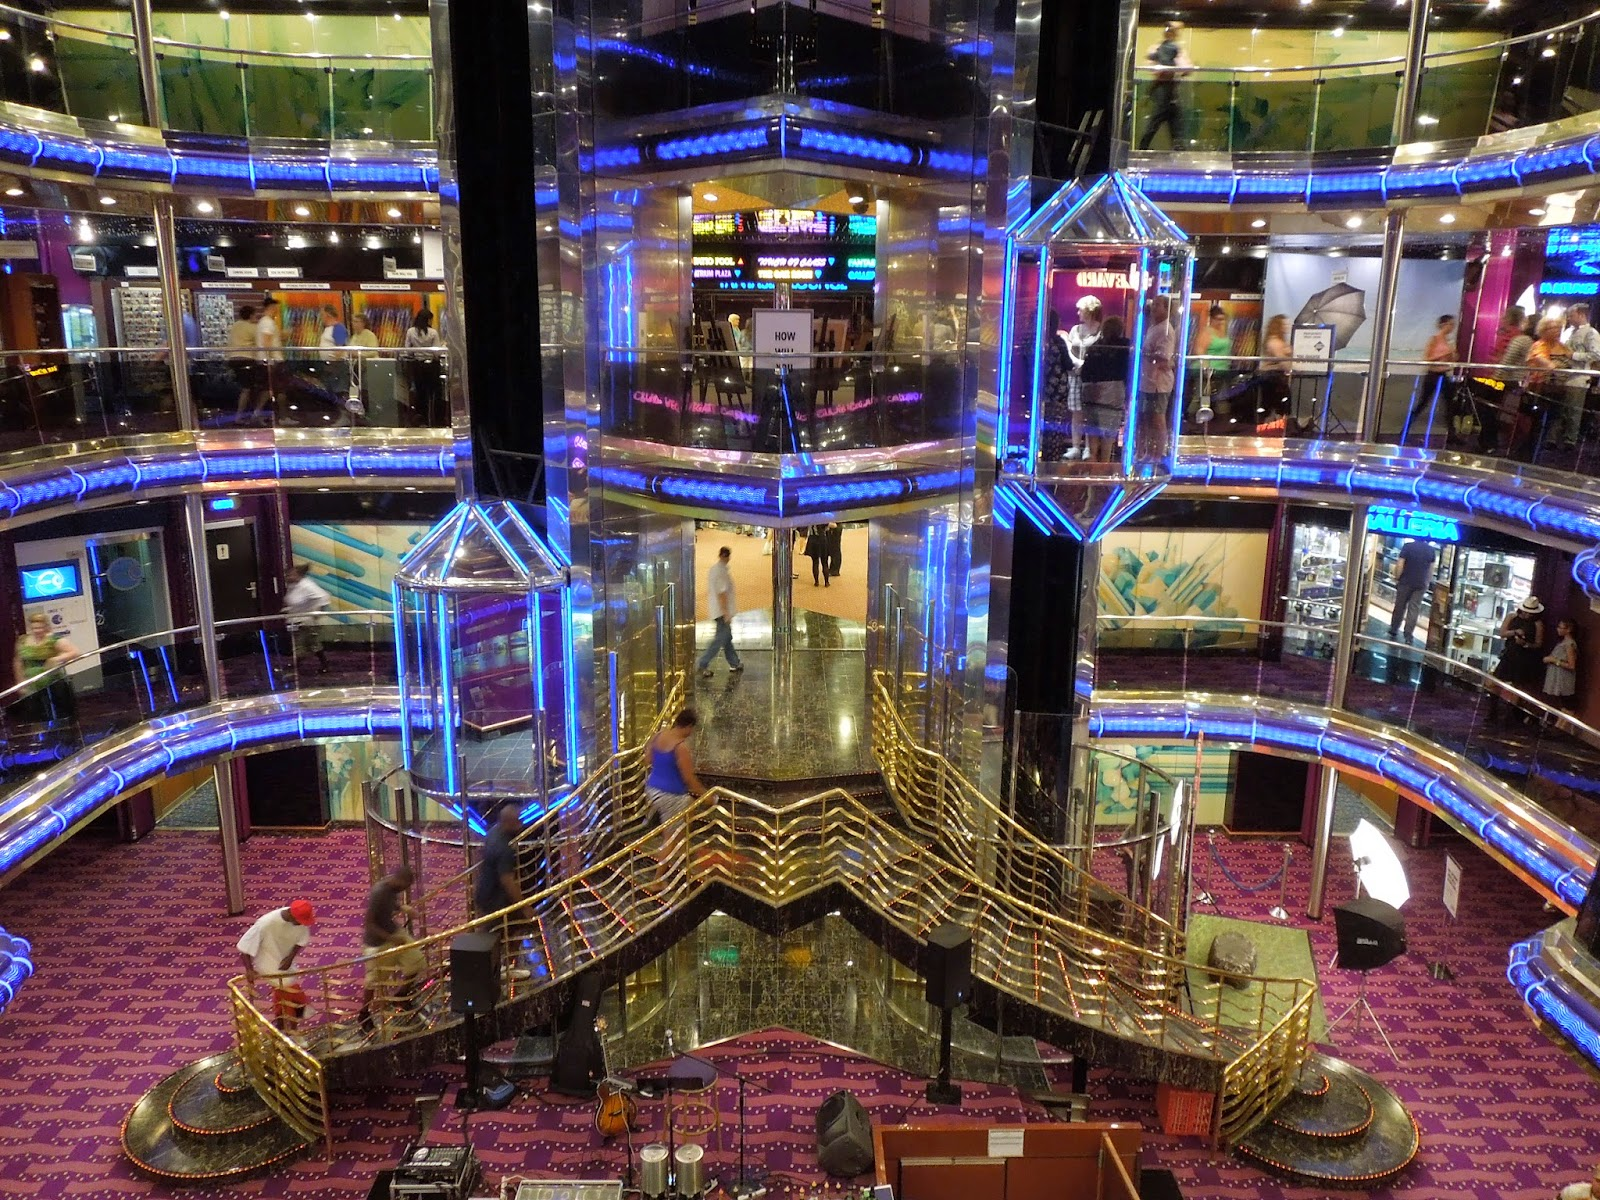 Carnival Sensation atrium at night